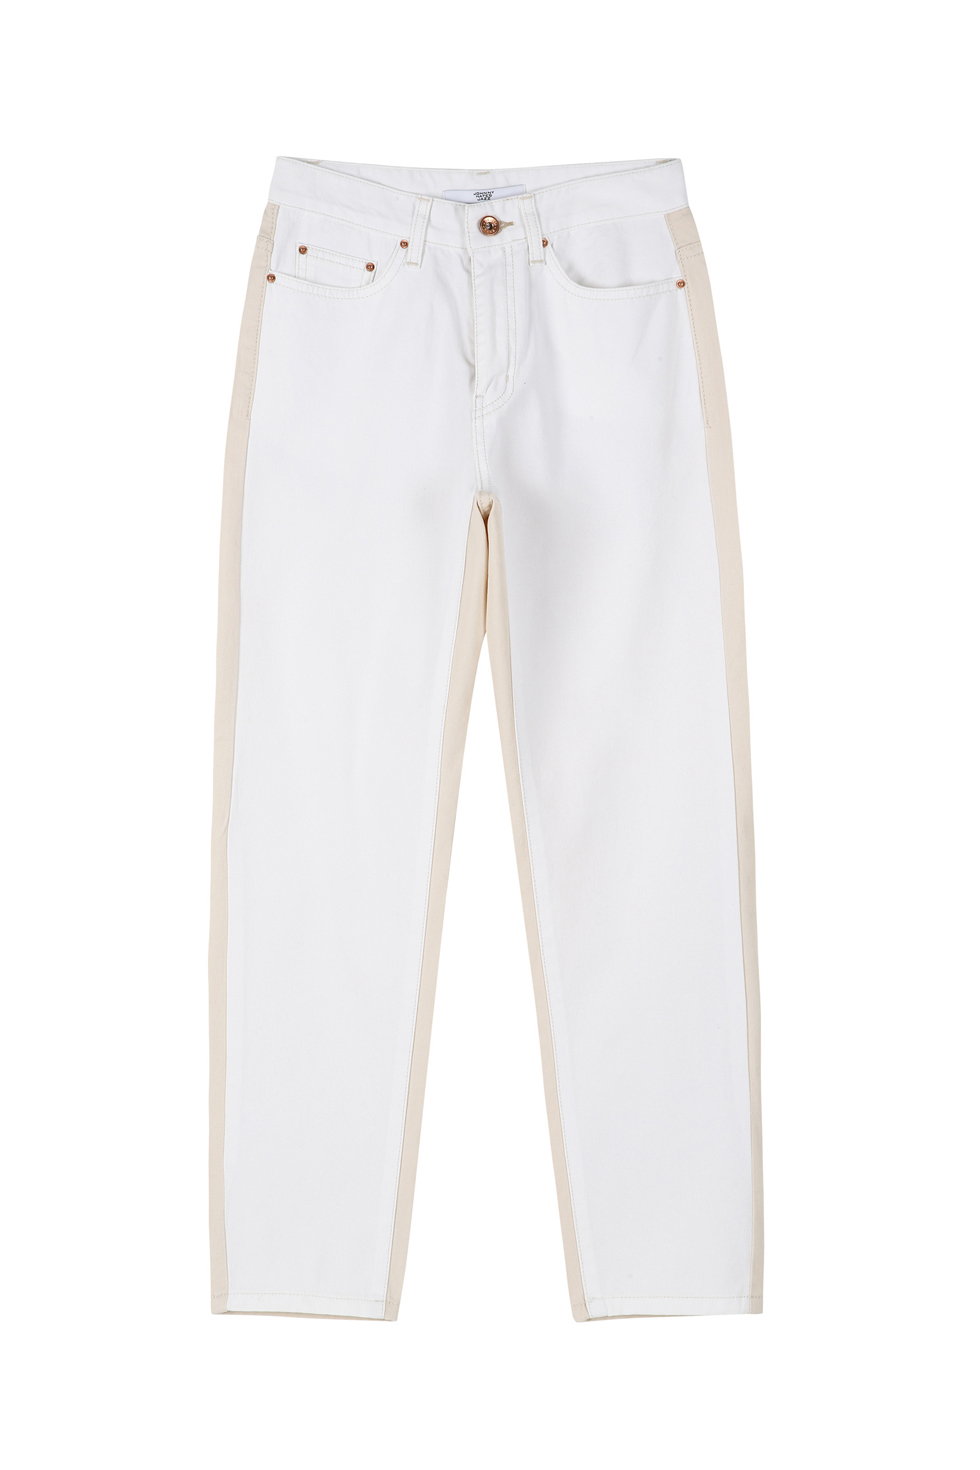 CONTRASTING PANTS - WHITE